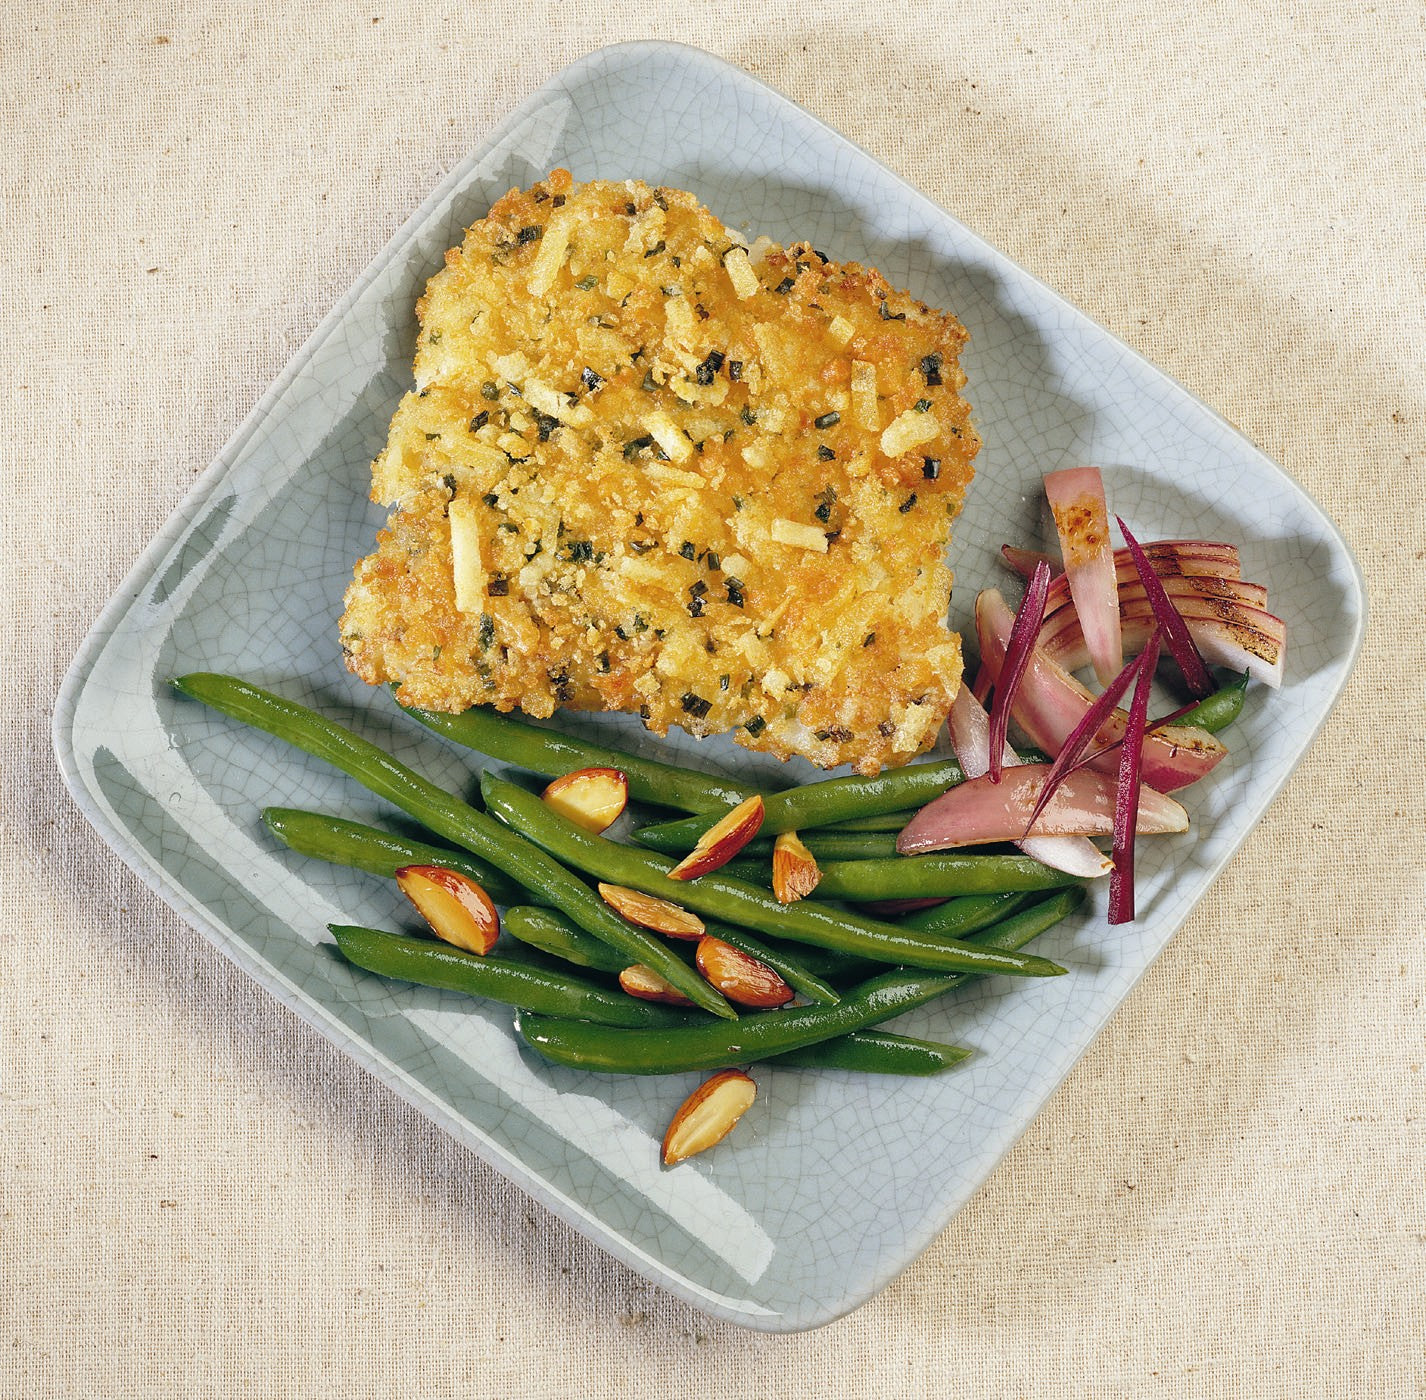 High Liner Frozen Potato Cheddar Chive Crusted Cod Fillet - 1 Pack [$11.05/lb]